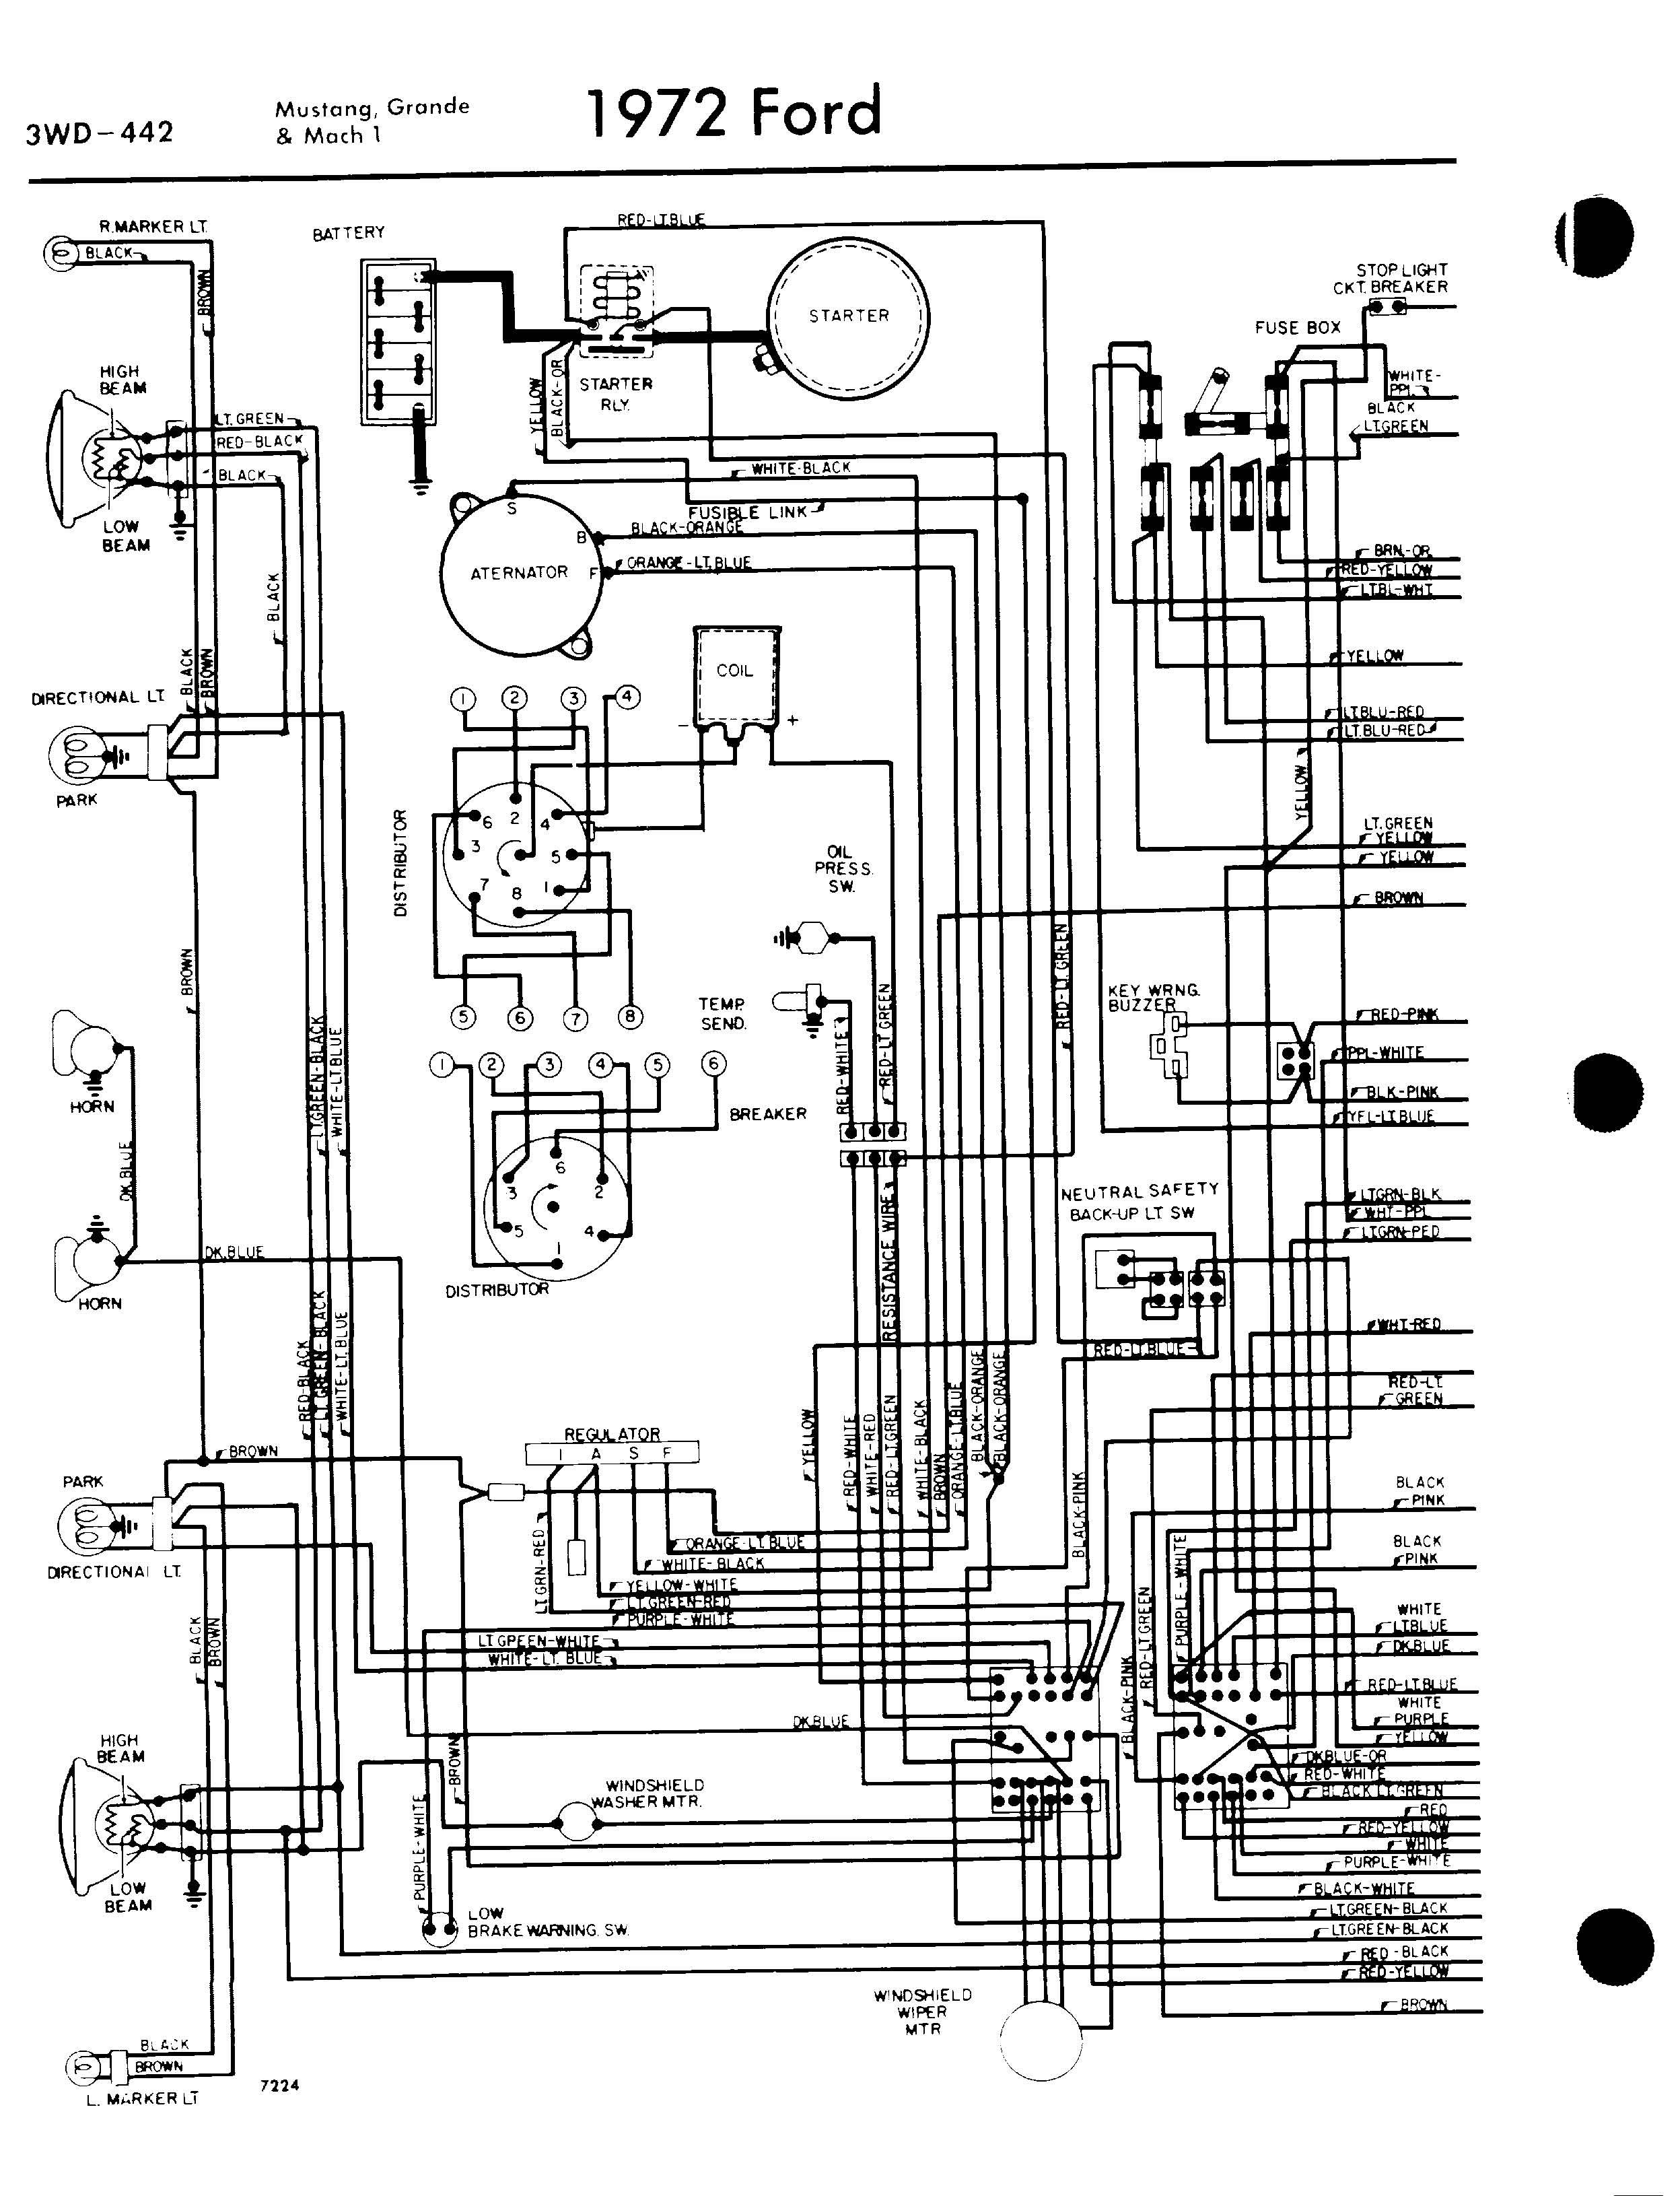 hight resolution of ford 302 wiring diagram wiring diagram for you 1973 mustang wiring diagram 1974 ford 302 engine